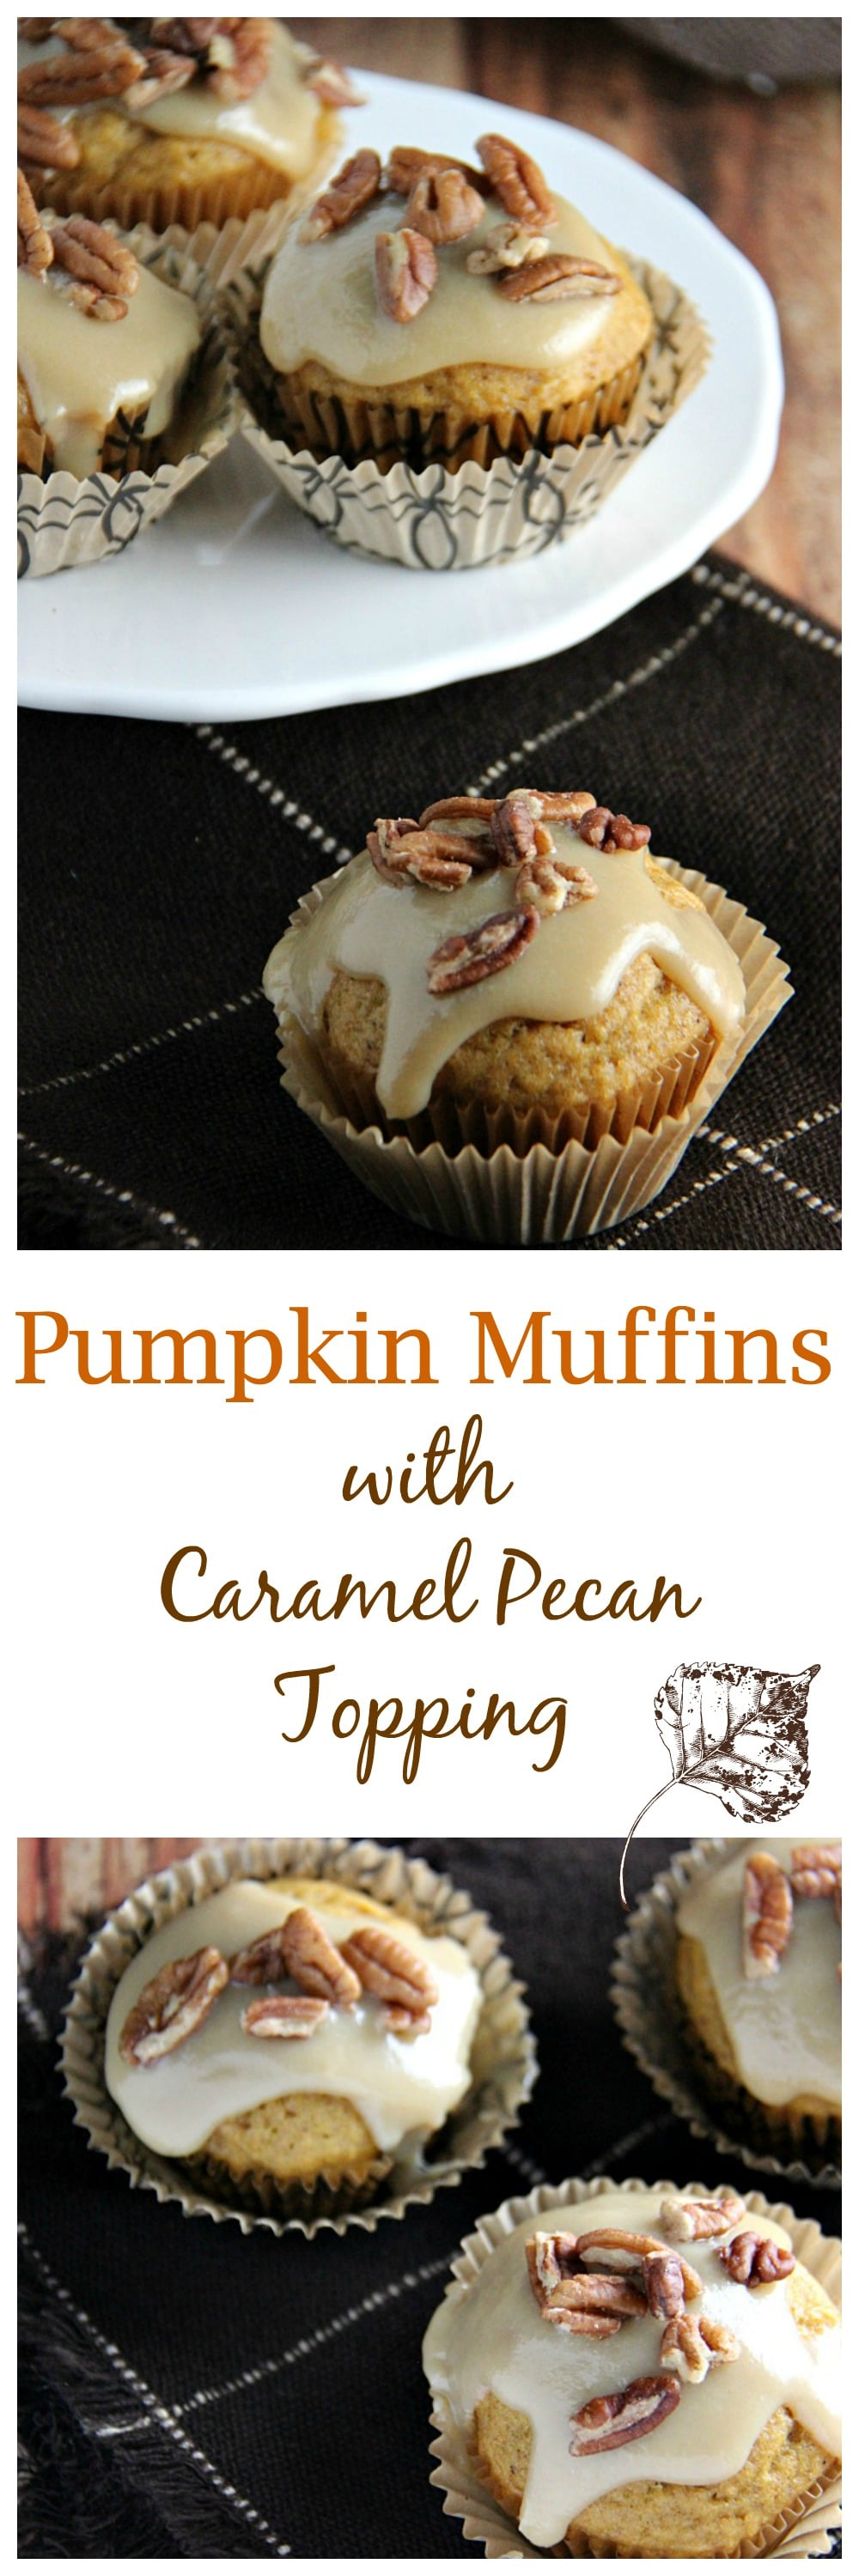 Pumpkin Muffins with Homemade Caramel Pecan Topping